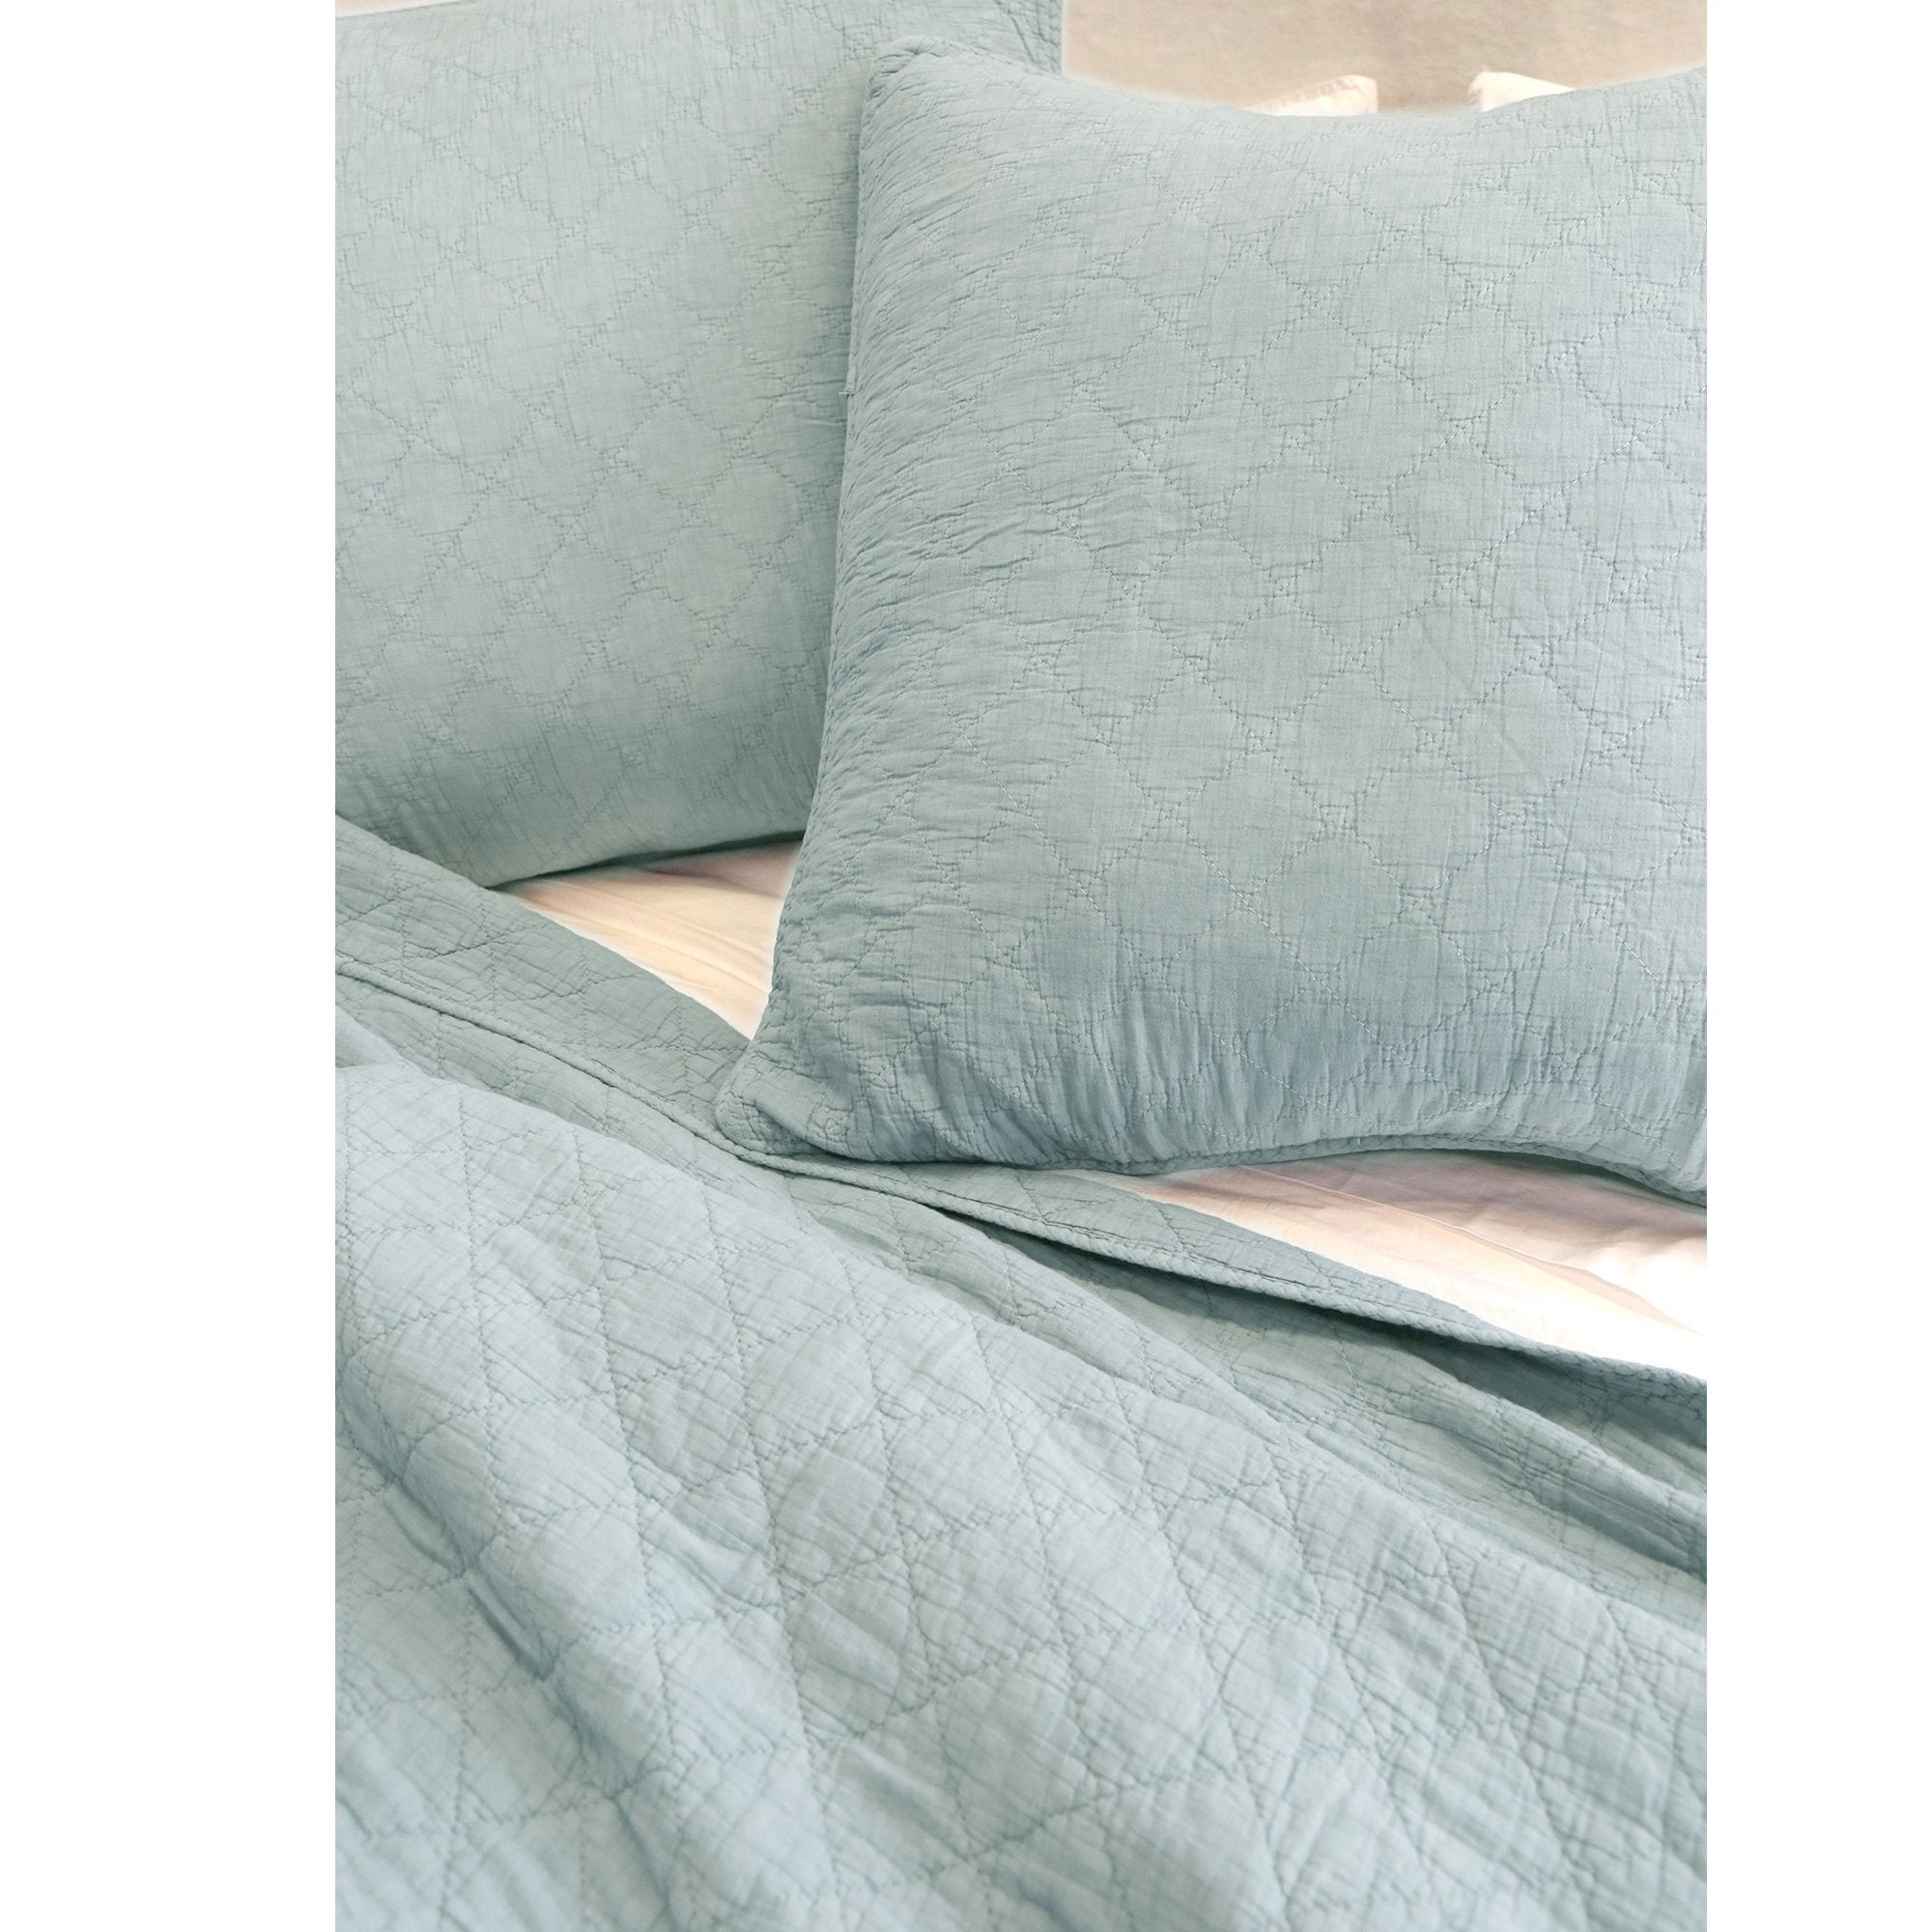 Fig Linens - Pom Pom at Home Bedding - Huntington Sea Glass quilted coverlet and large euro sham